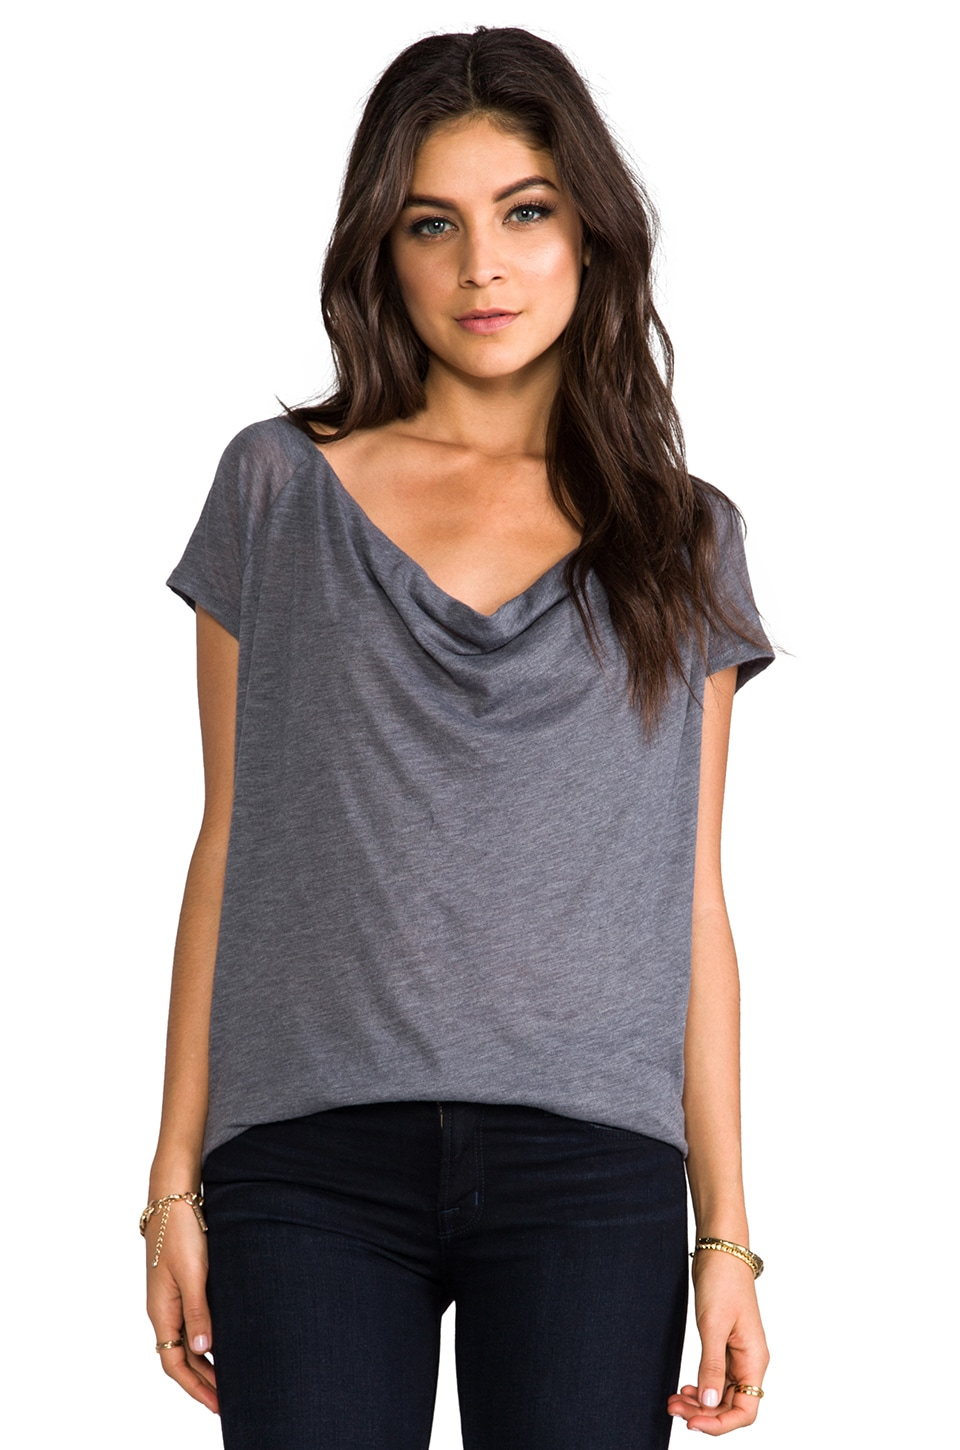 Soft Joie Imogen Top in Dark Heather Grey